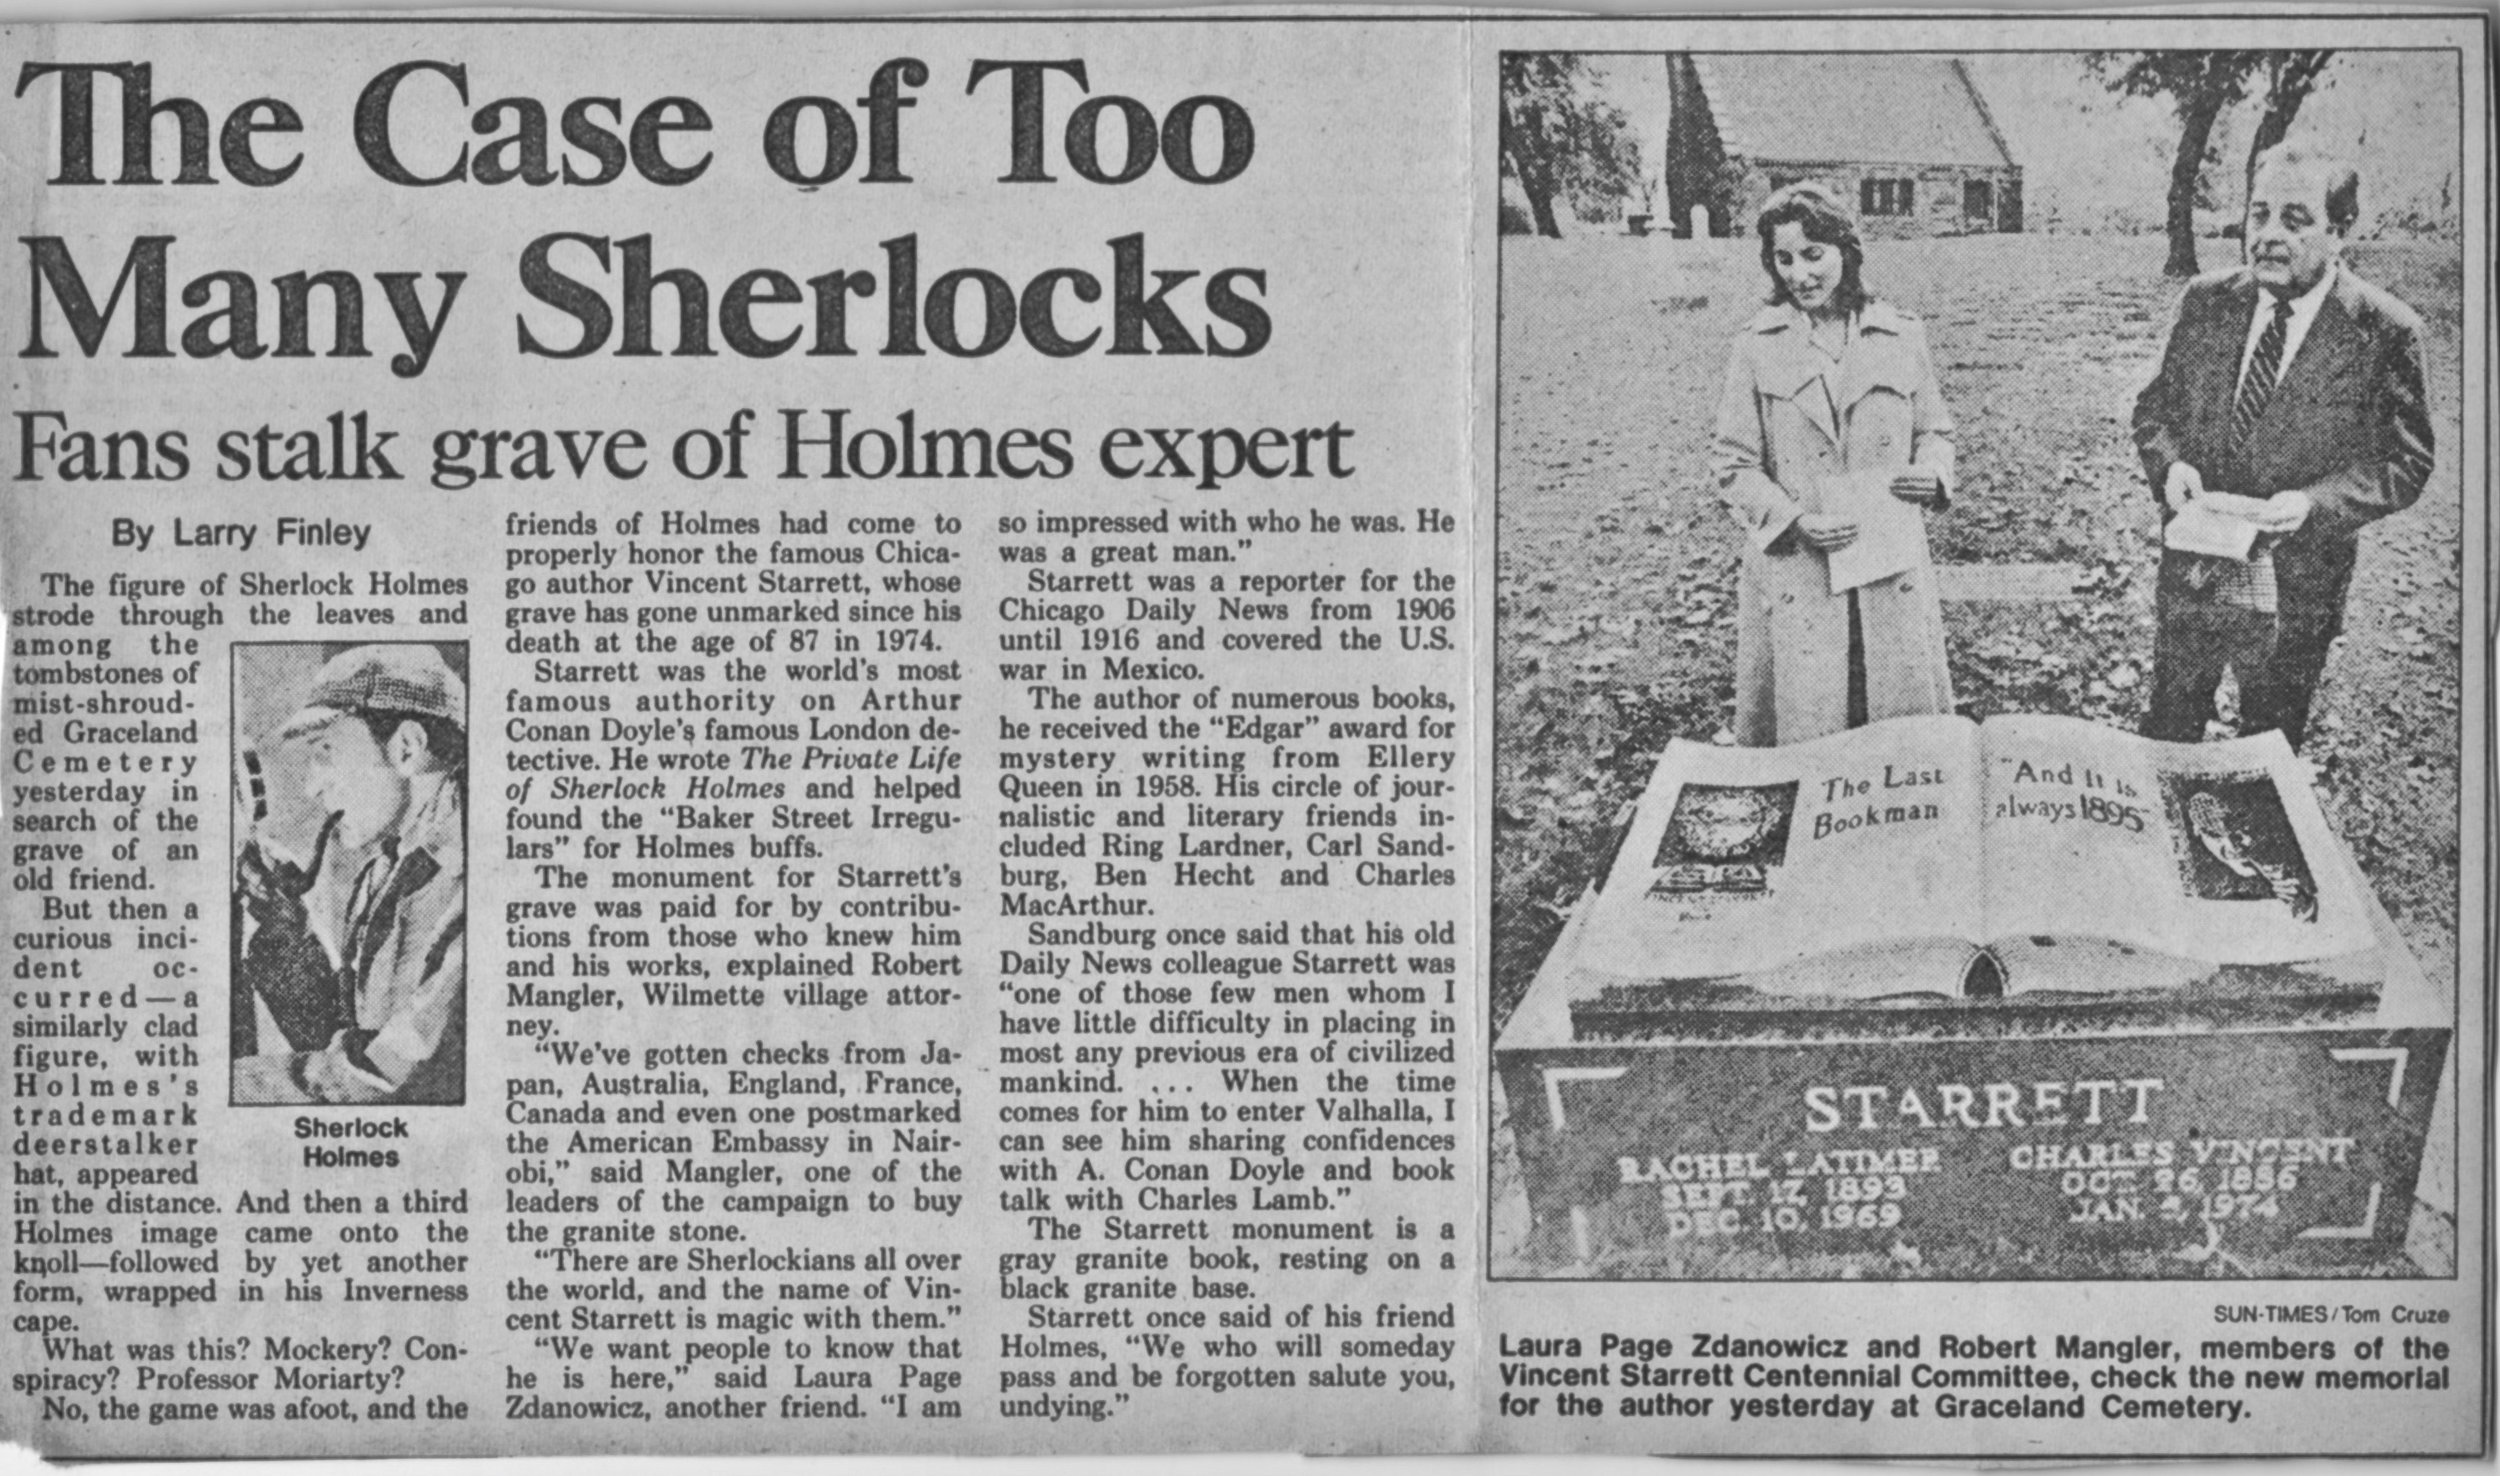 An article from the  Chicago Sun-Times  of Monday, Oct. 27, 1986. The ceremony was also covered by the  Chicago Tribune  and UPI, United Press International. Laura Page, who was instrumental in the effort to get the headstone for the grave, is shown with the late Bob Mangler. Laura is now spearheading a drive to have the stone cleaned and restored.